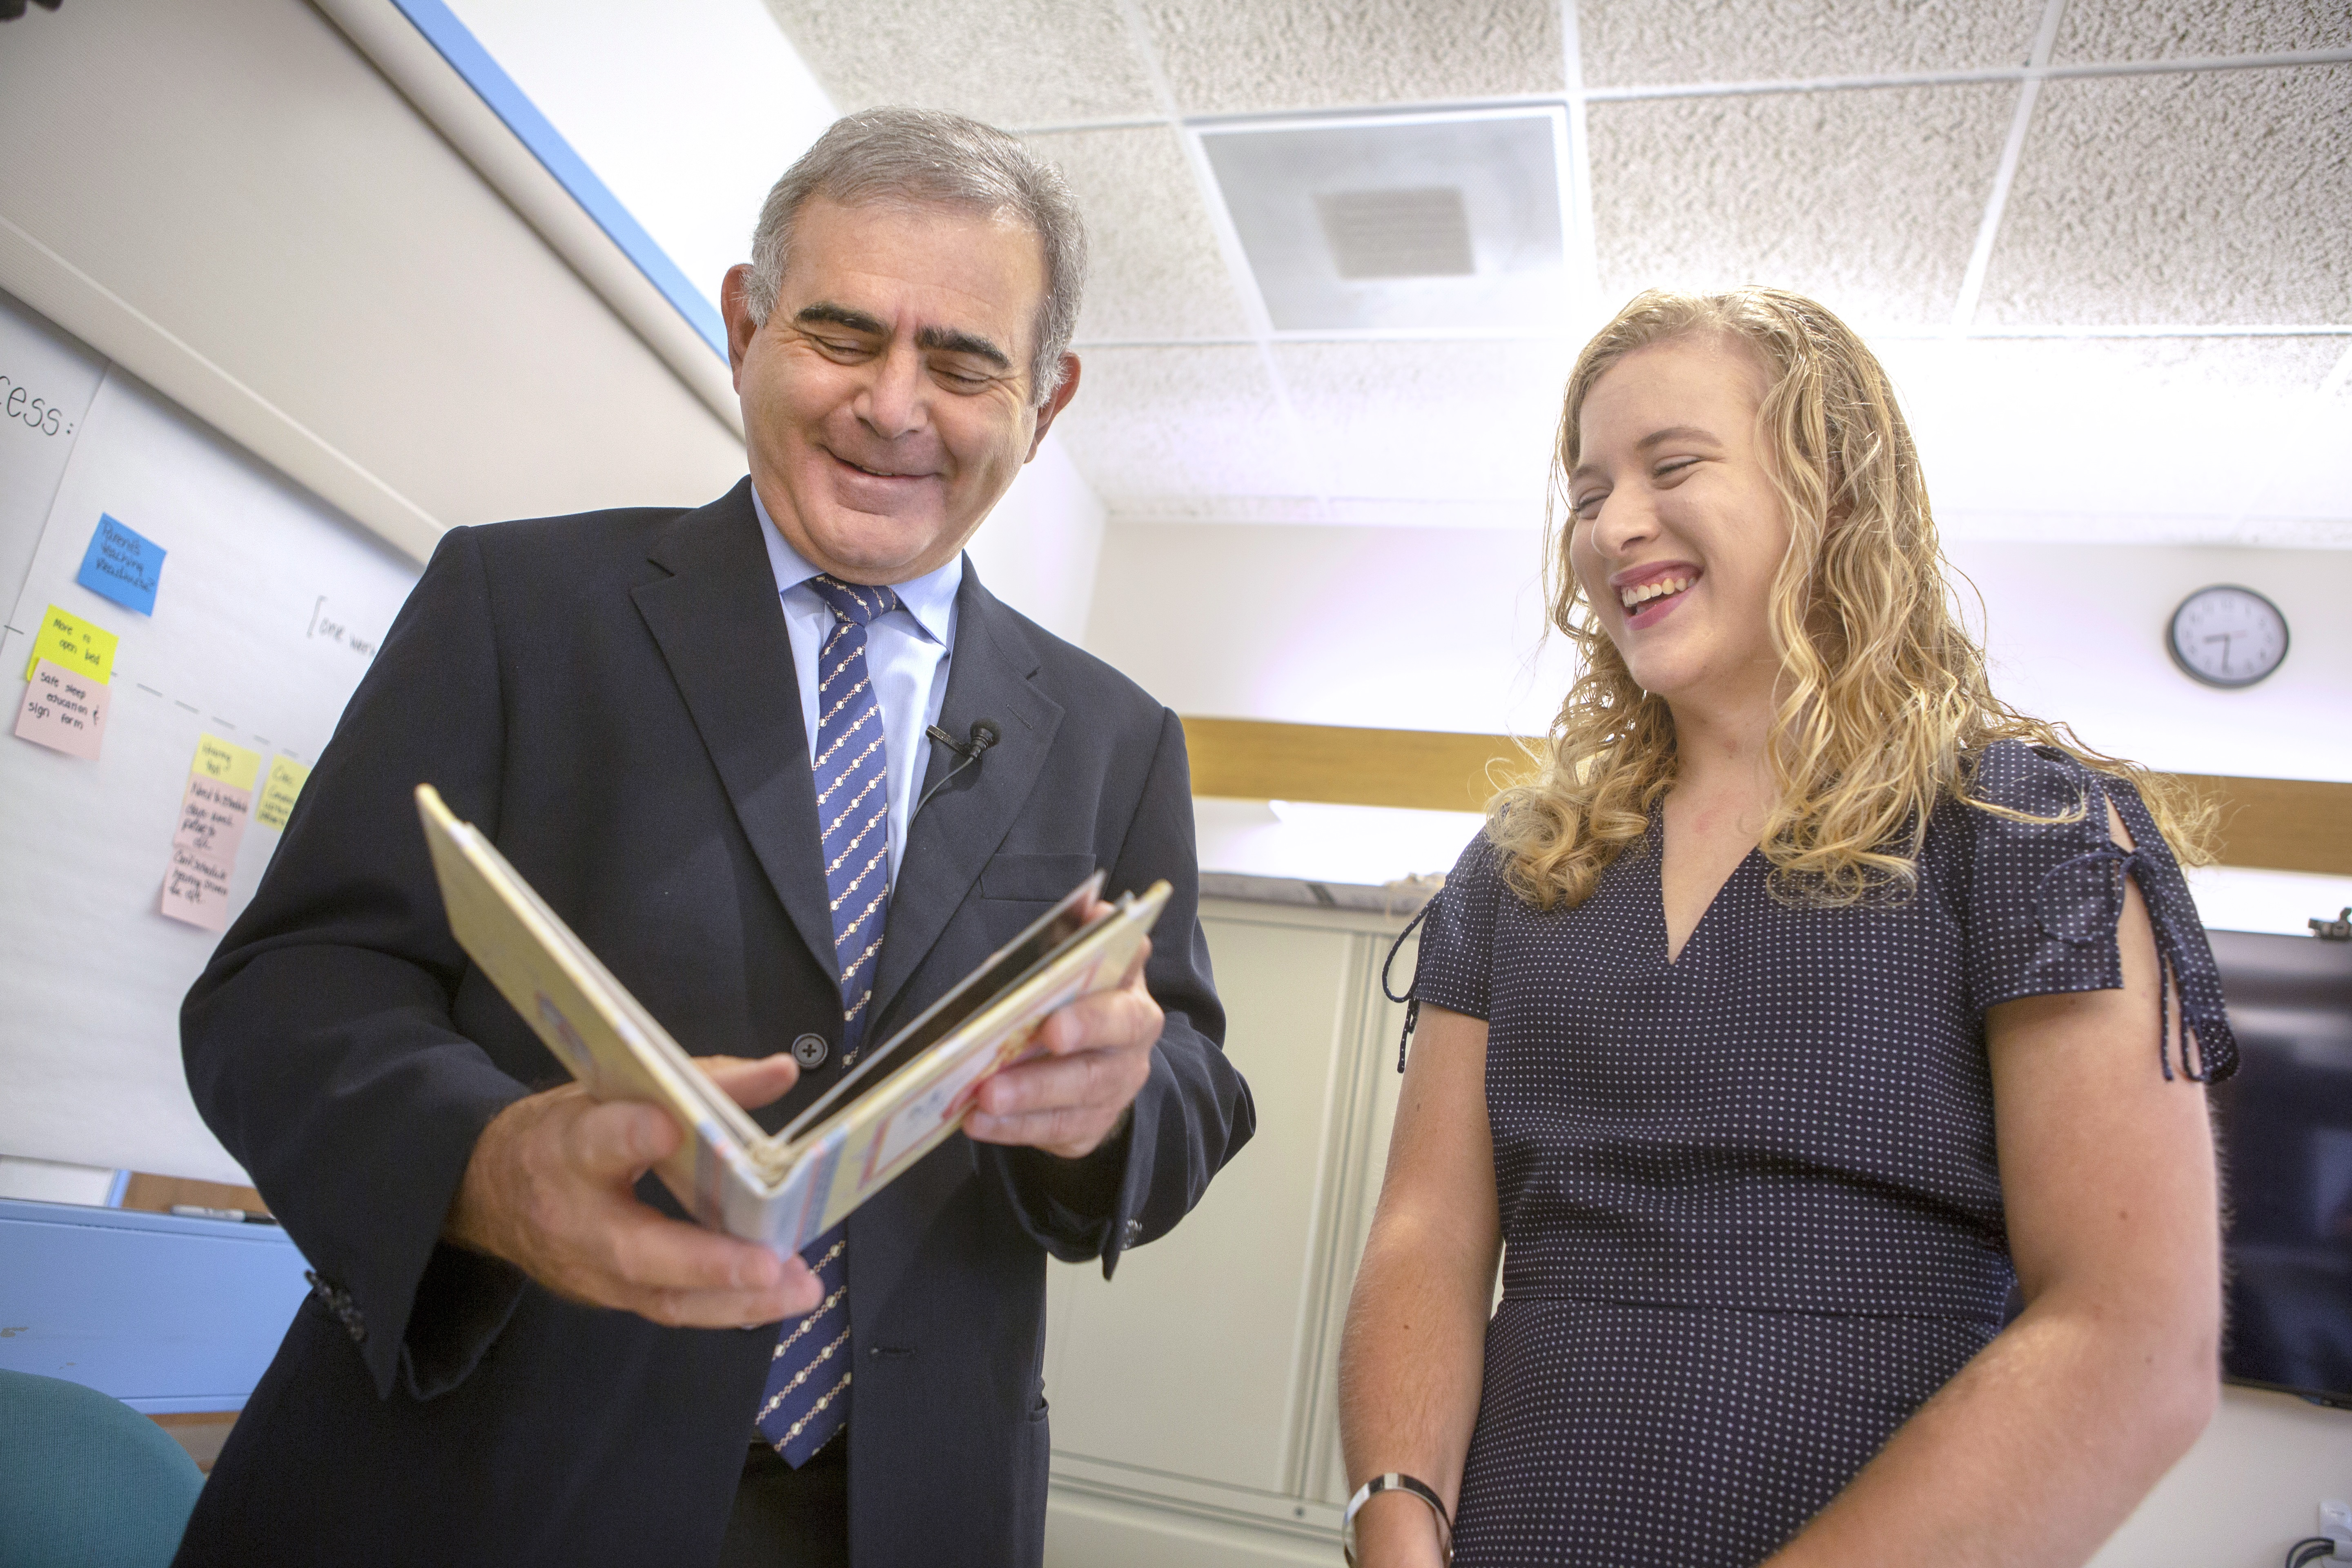 Dr. Charles Palmer, a neonatologist at Penn State Children's Hospital, and Tiffany Seibert, an intern at the Penn State ALS Clinic, smile as they look at a photo album of baby photos of Tiffany when she born prematurely 21 years ago. Dr. Palmer is wearing a suit and tie, and Tiffany is wearing a dress. They are standing in a conference room with a whiteboard, cabinet and clock behind them.